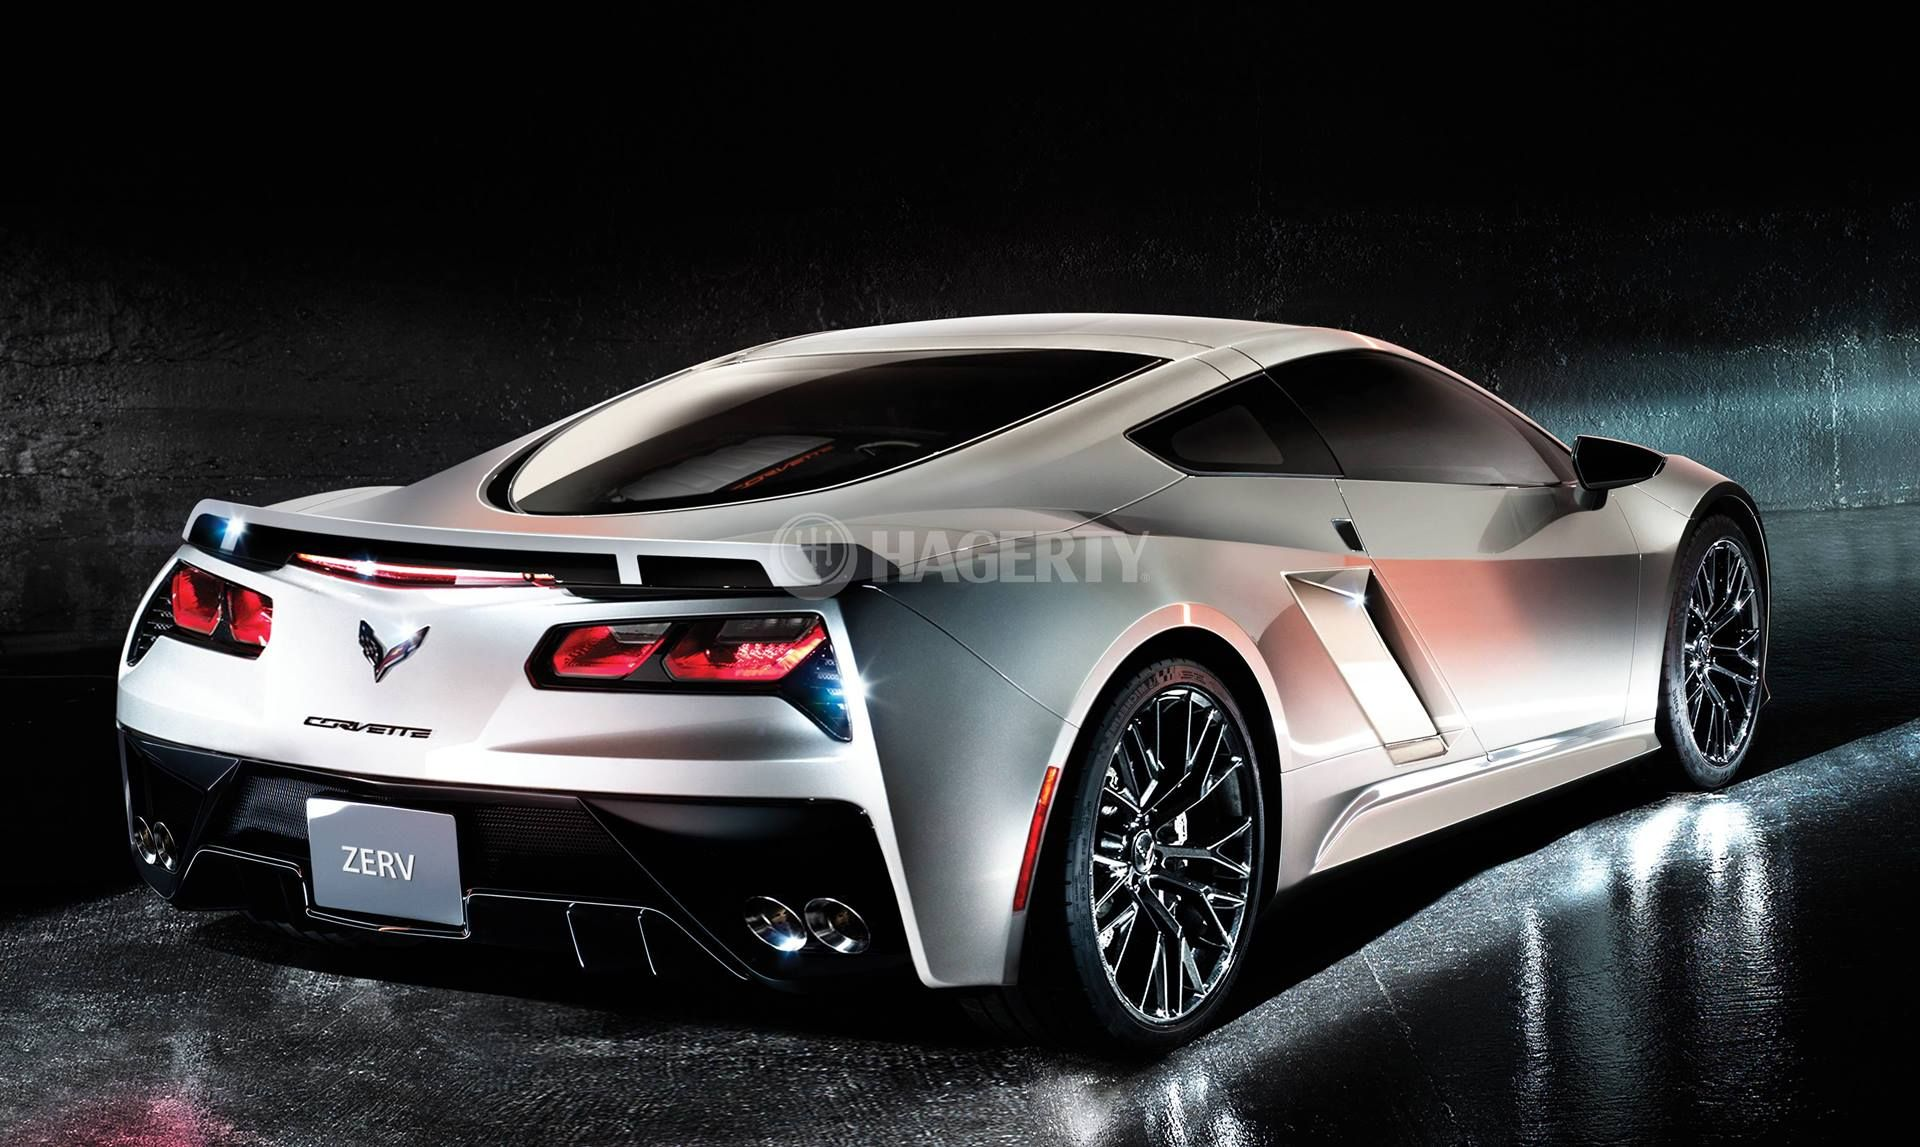 Here S What The Mid Engine Corvette C8 Will Look Like Corvette Chevrolet Corvette Chevy Corvette